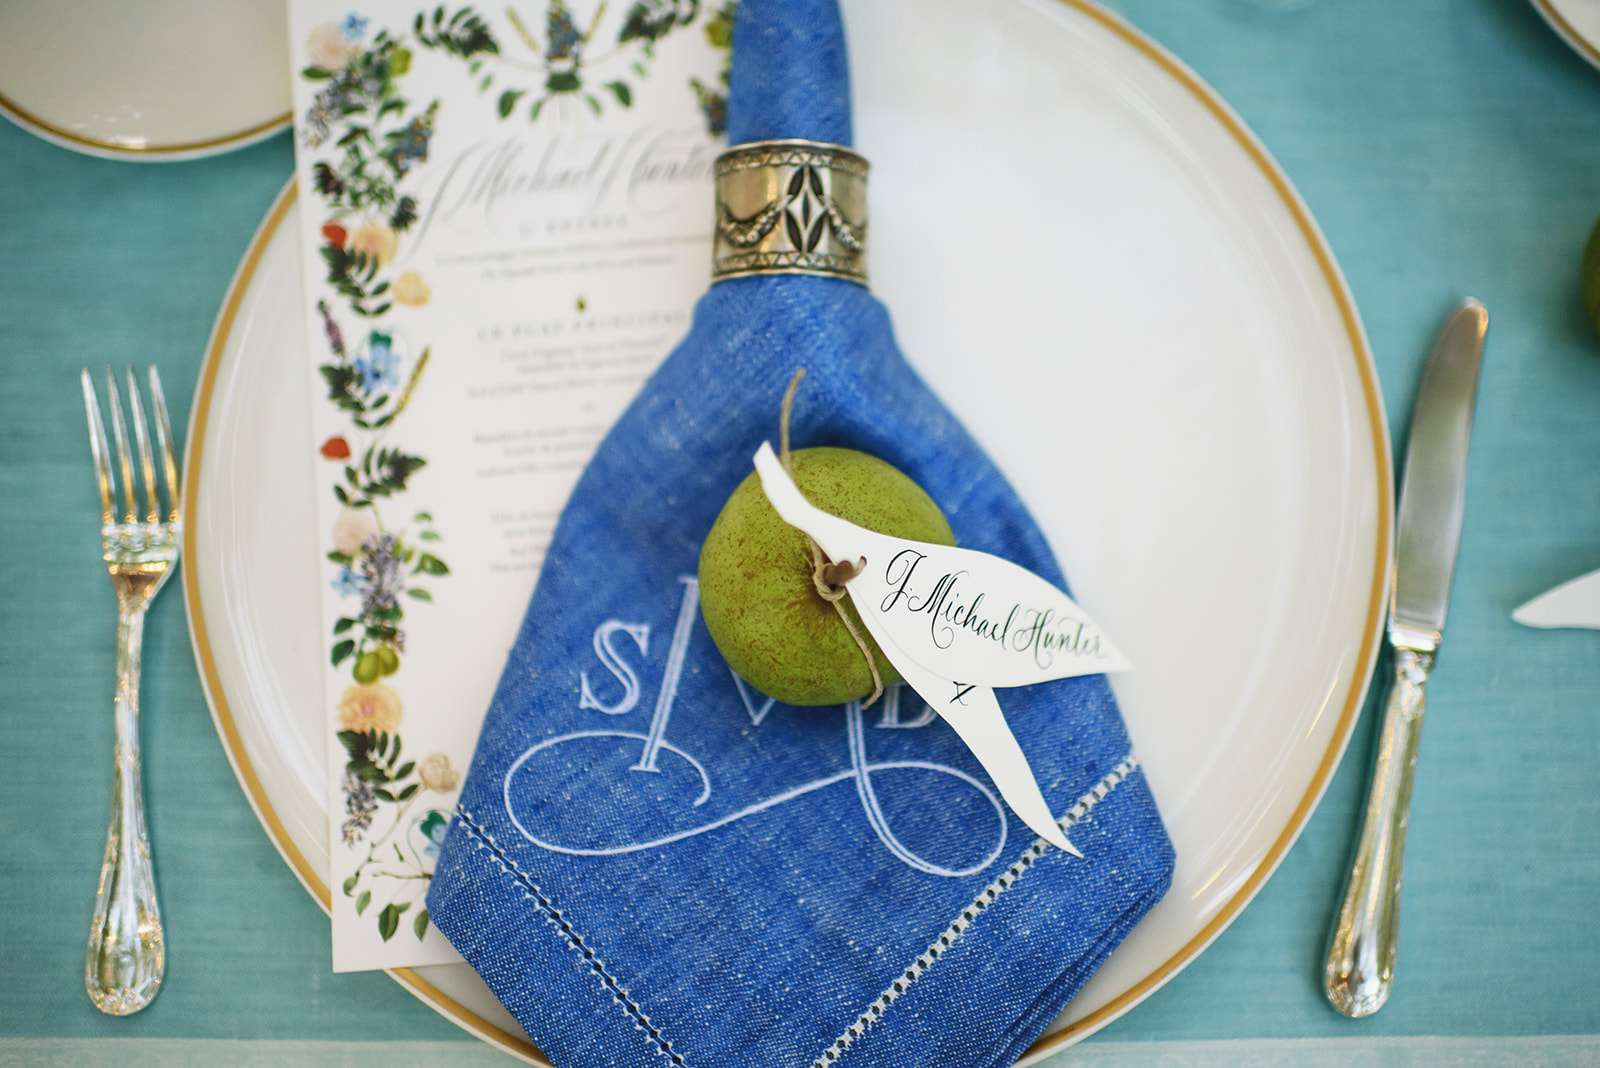 Pear at wedding place setting